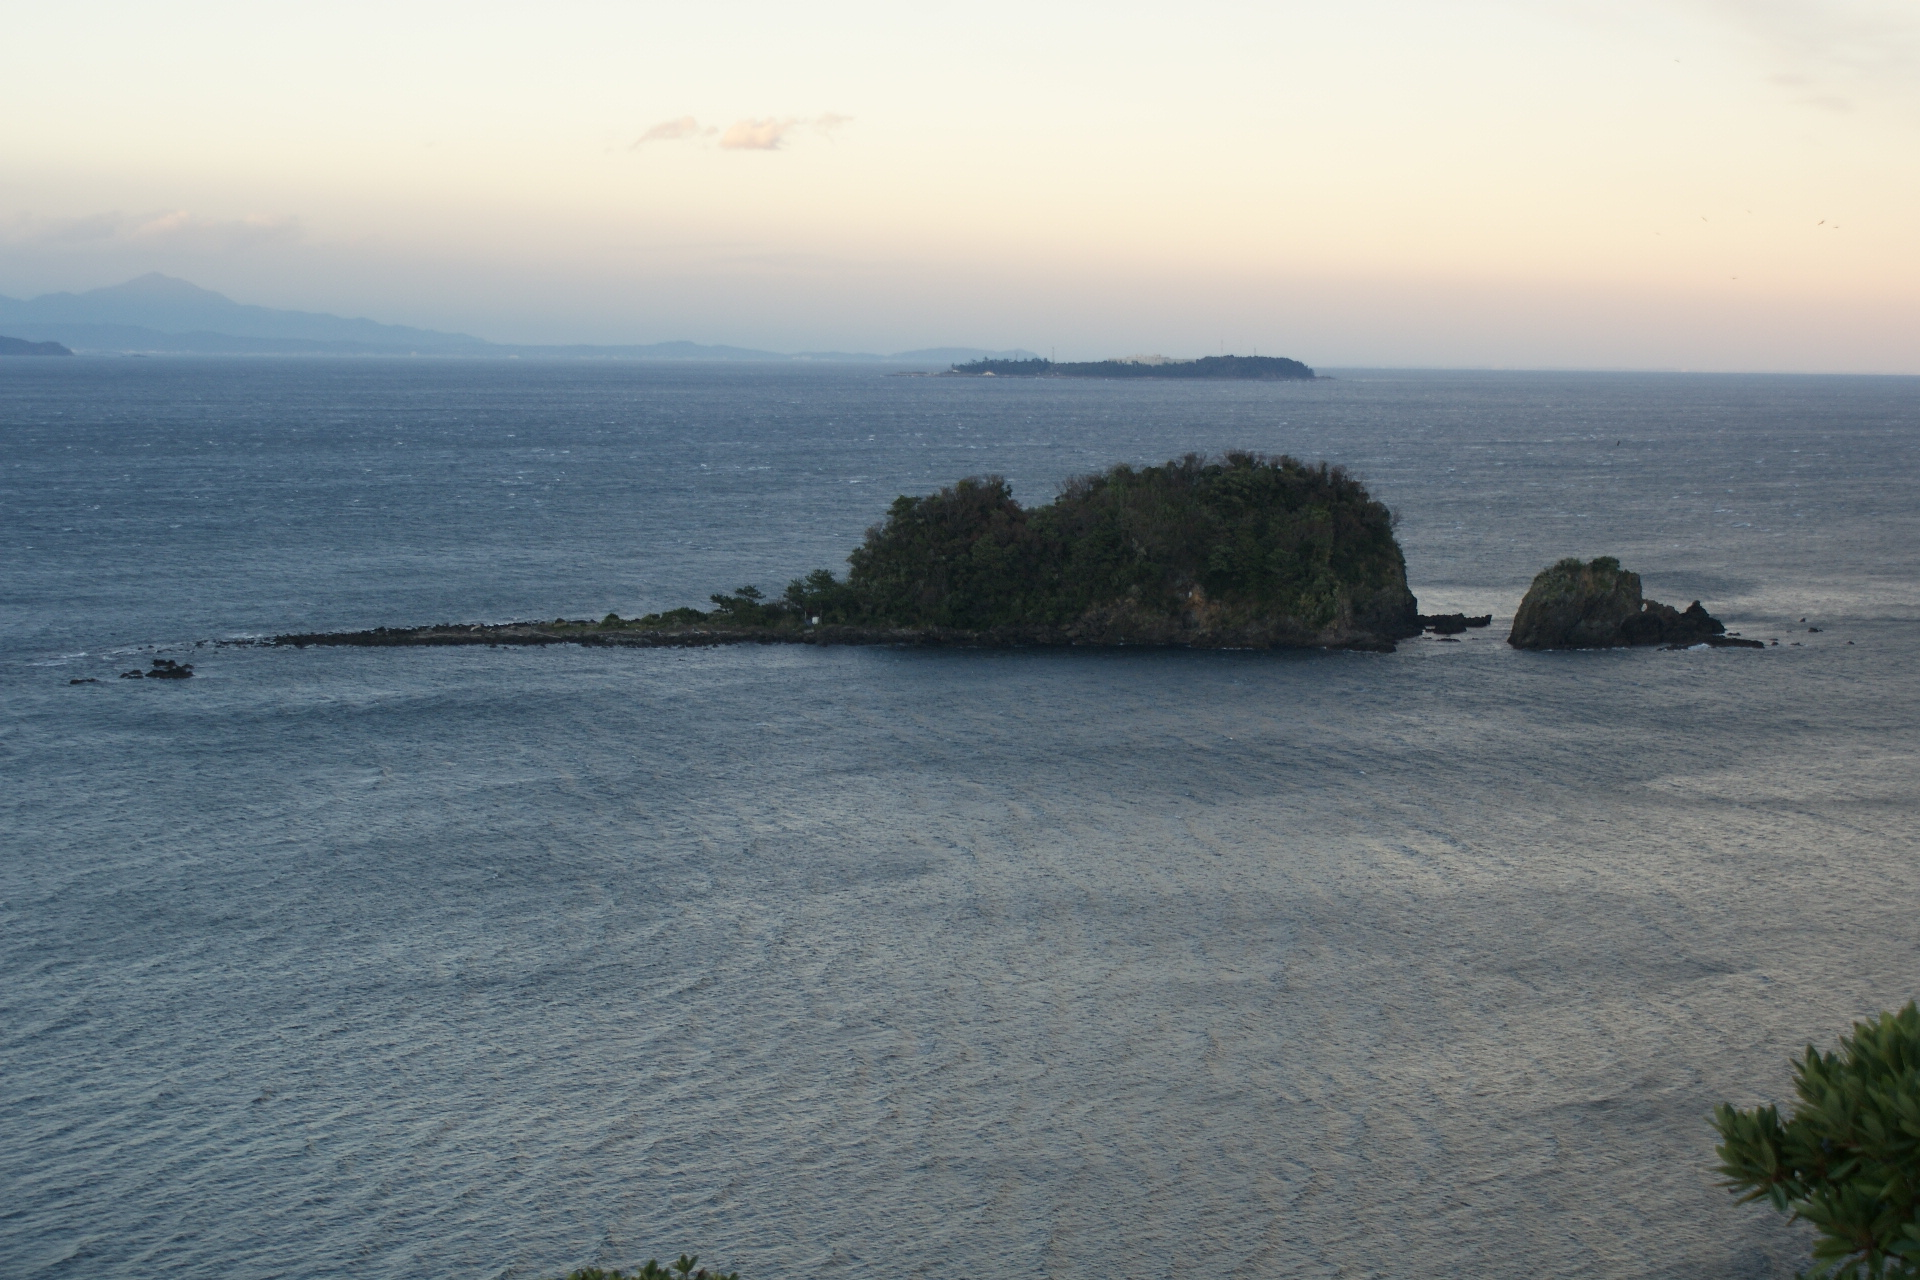 Obseravation point at Teishi island